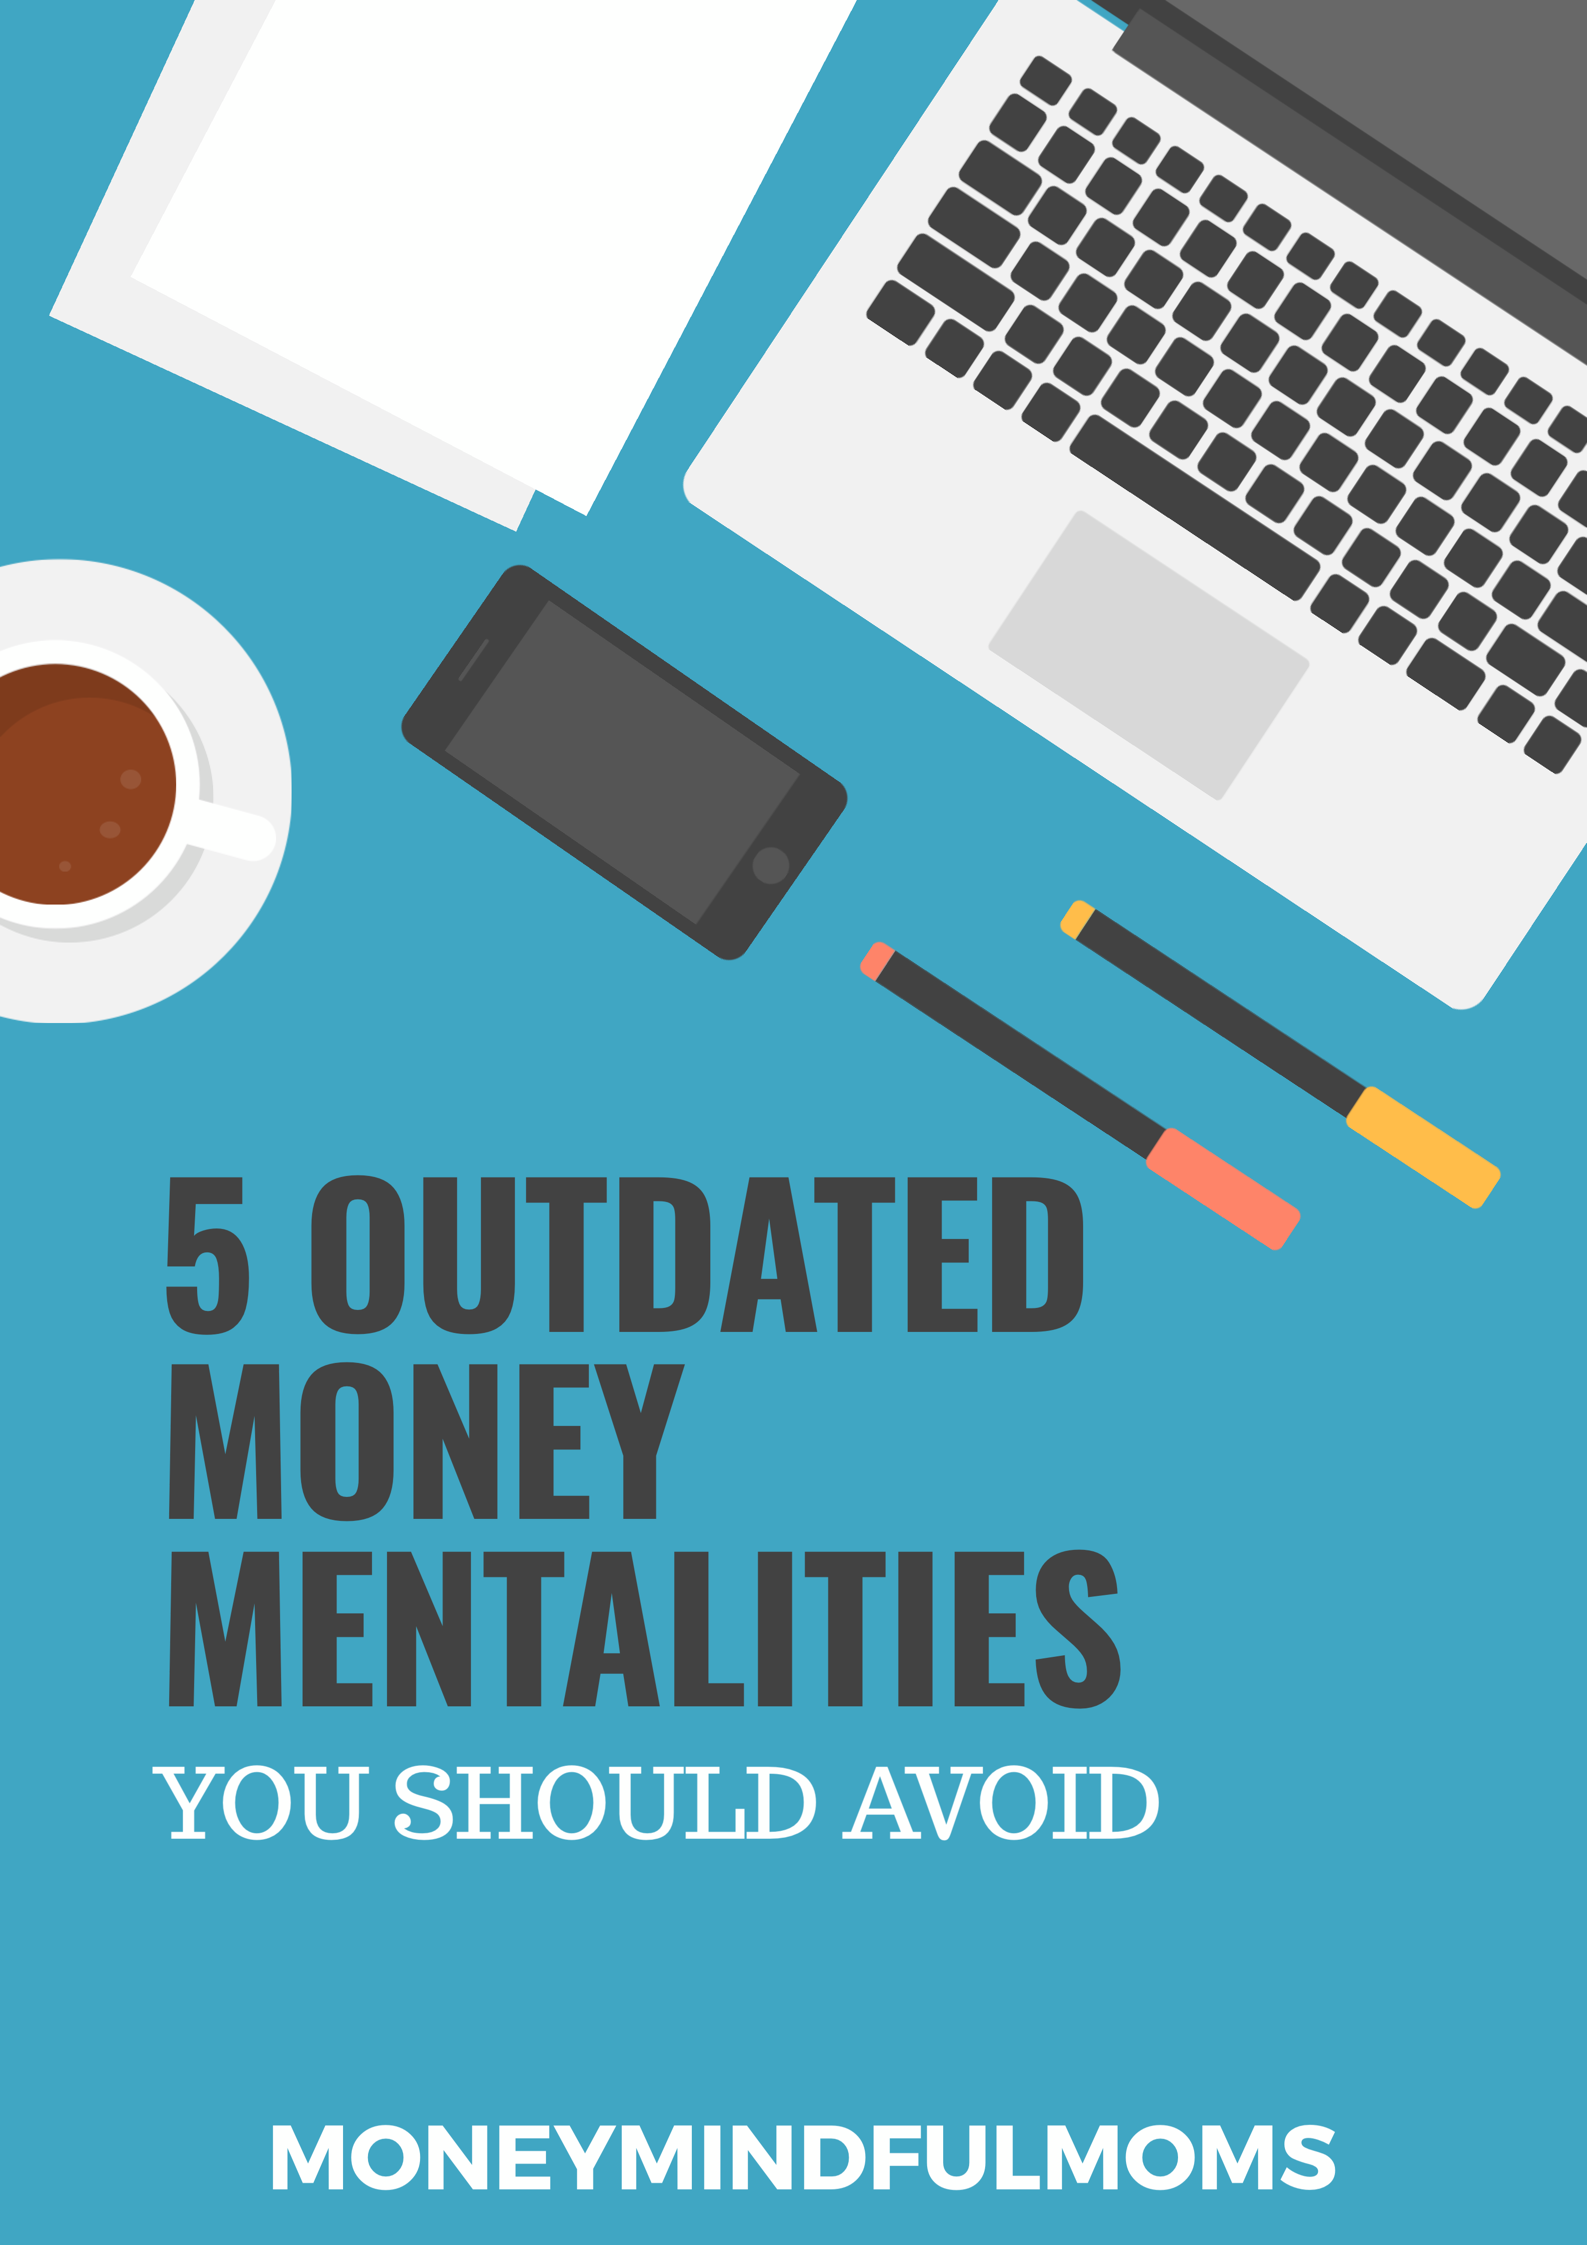 5 Out Dated Money Mentalities You Should Avoid